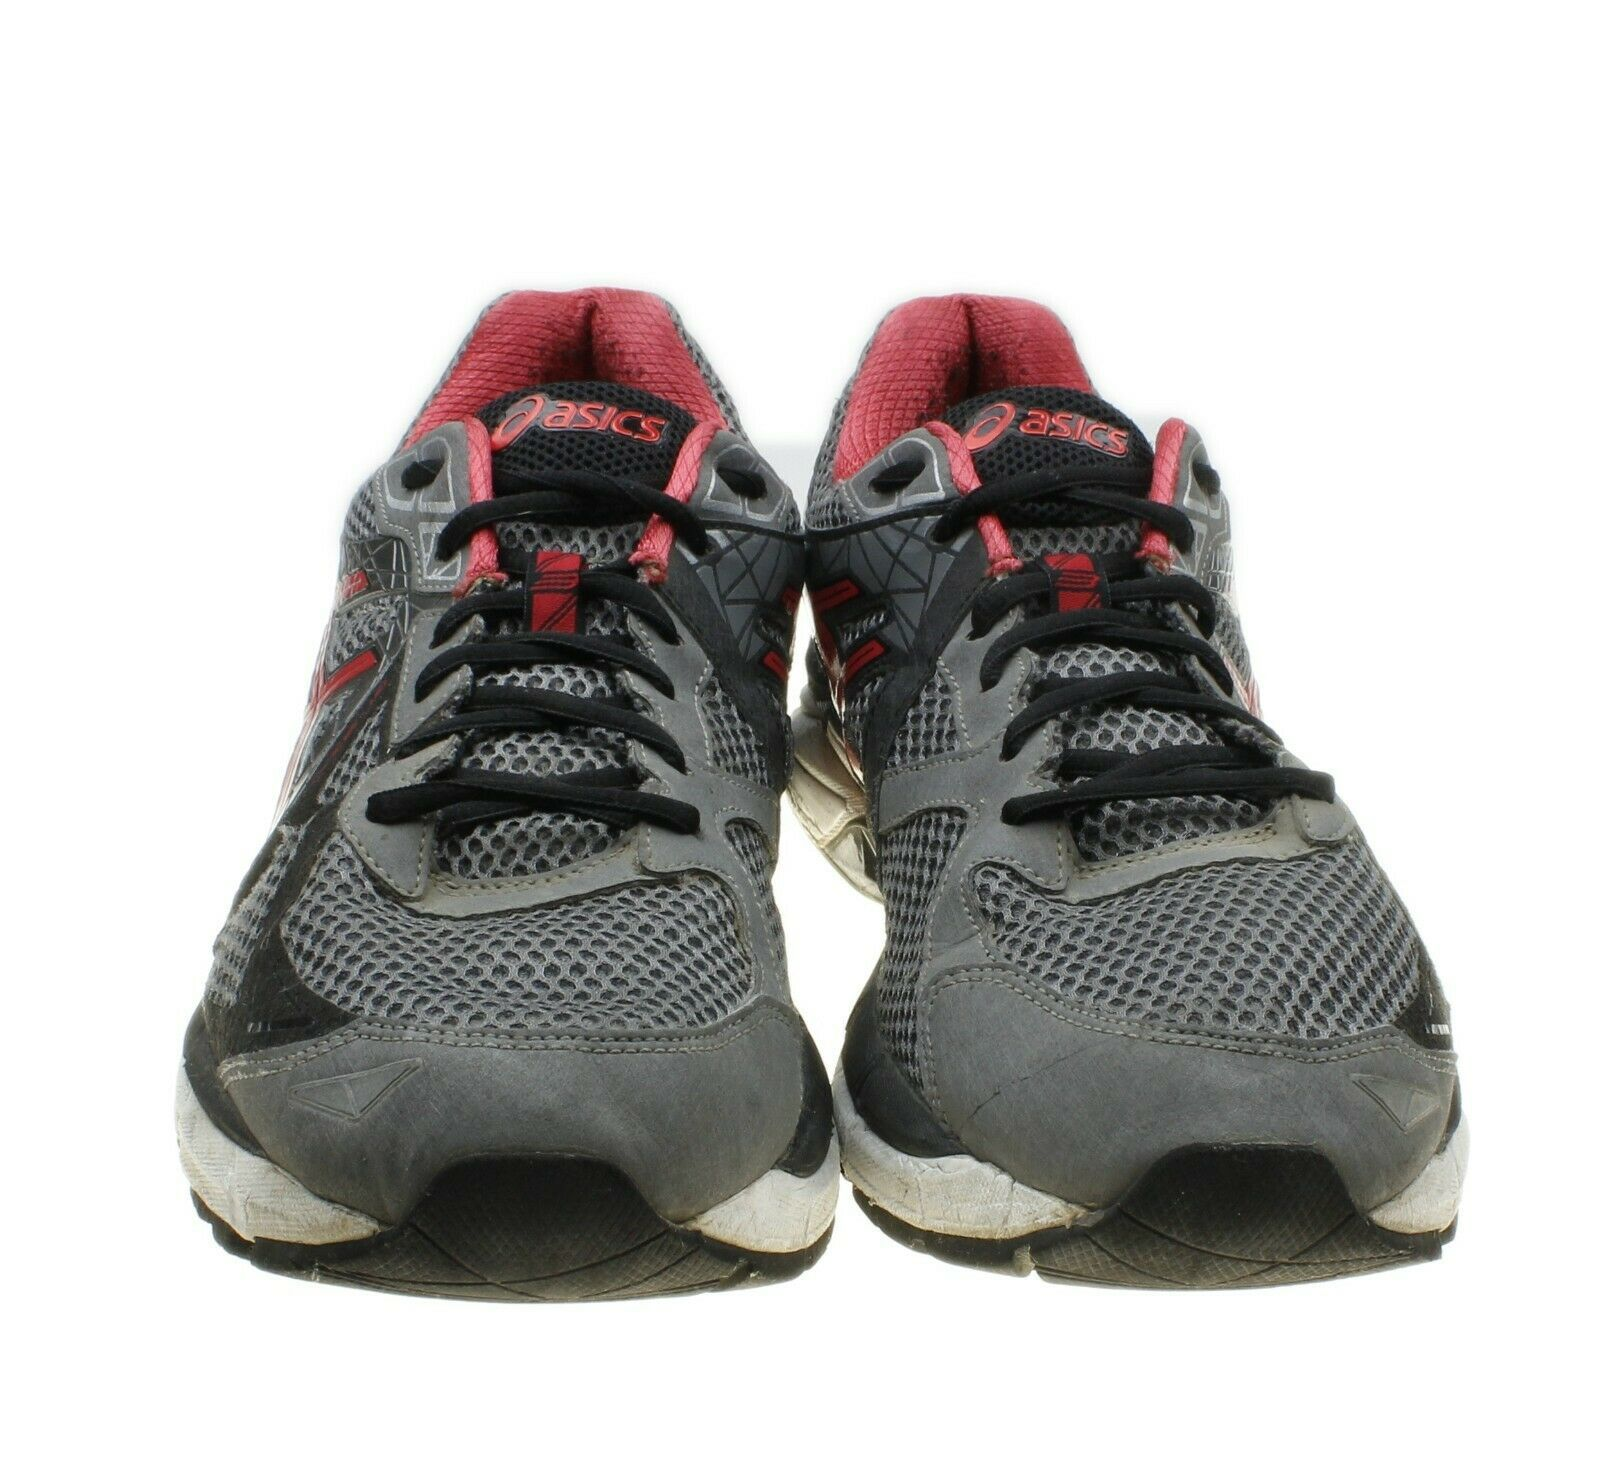 Asics GT 2000 v 3 Gray Mens Size 11.5 EU 46 Running Shoes Sneakers T500N image 8